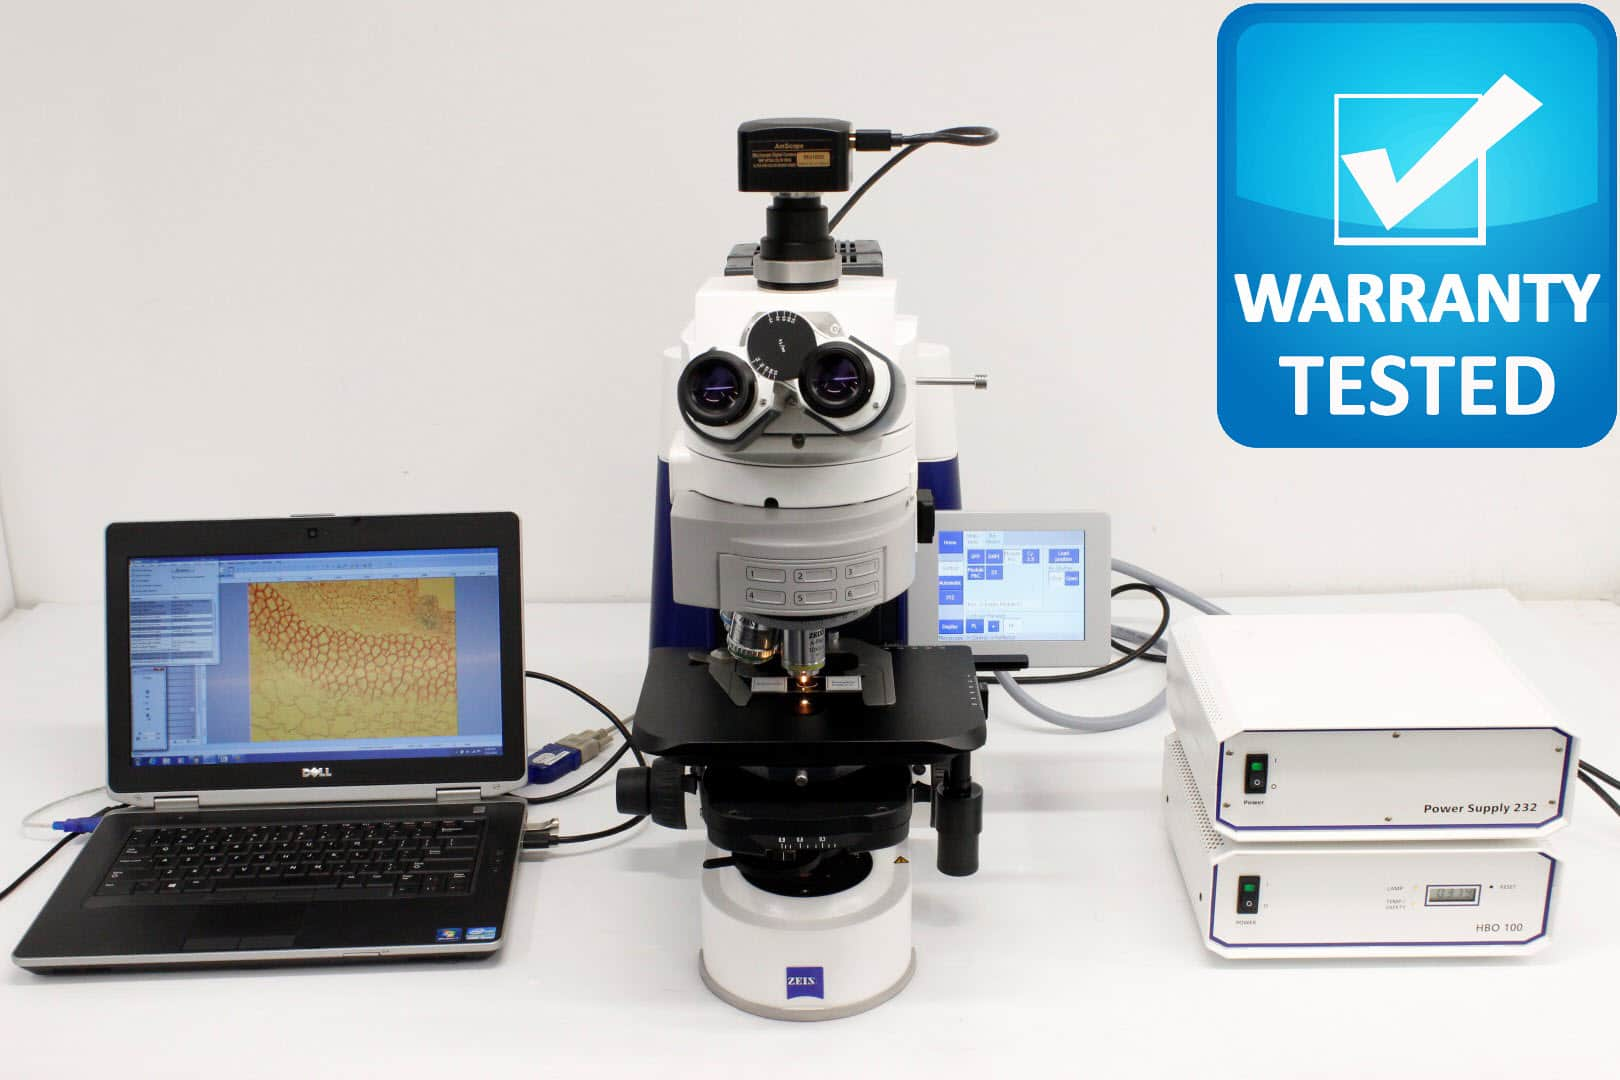 Zeiss AXIO Imager.M1 Motorized Fluorescence Microscope